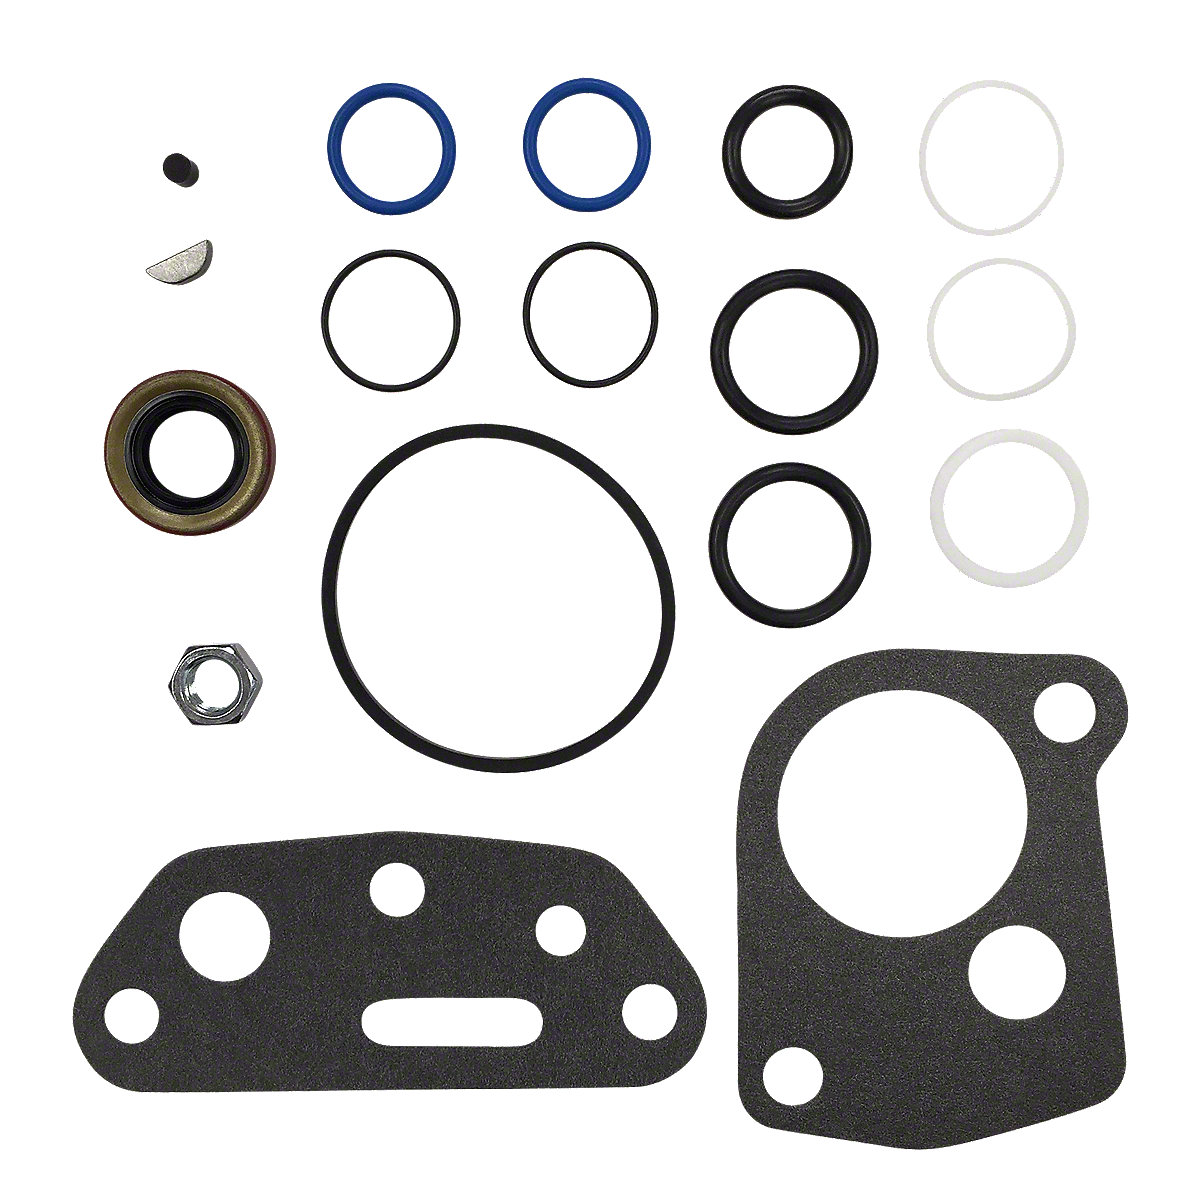 Hydraulic pump gasket and o ring kit ihs3506 for White hydraulic motor seal kit